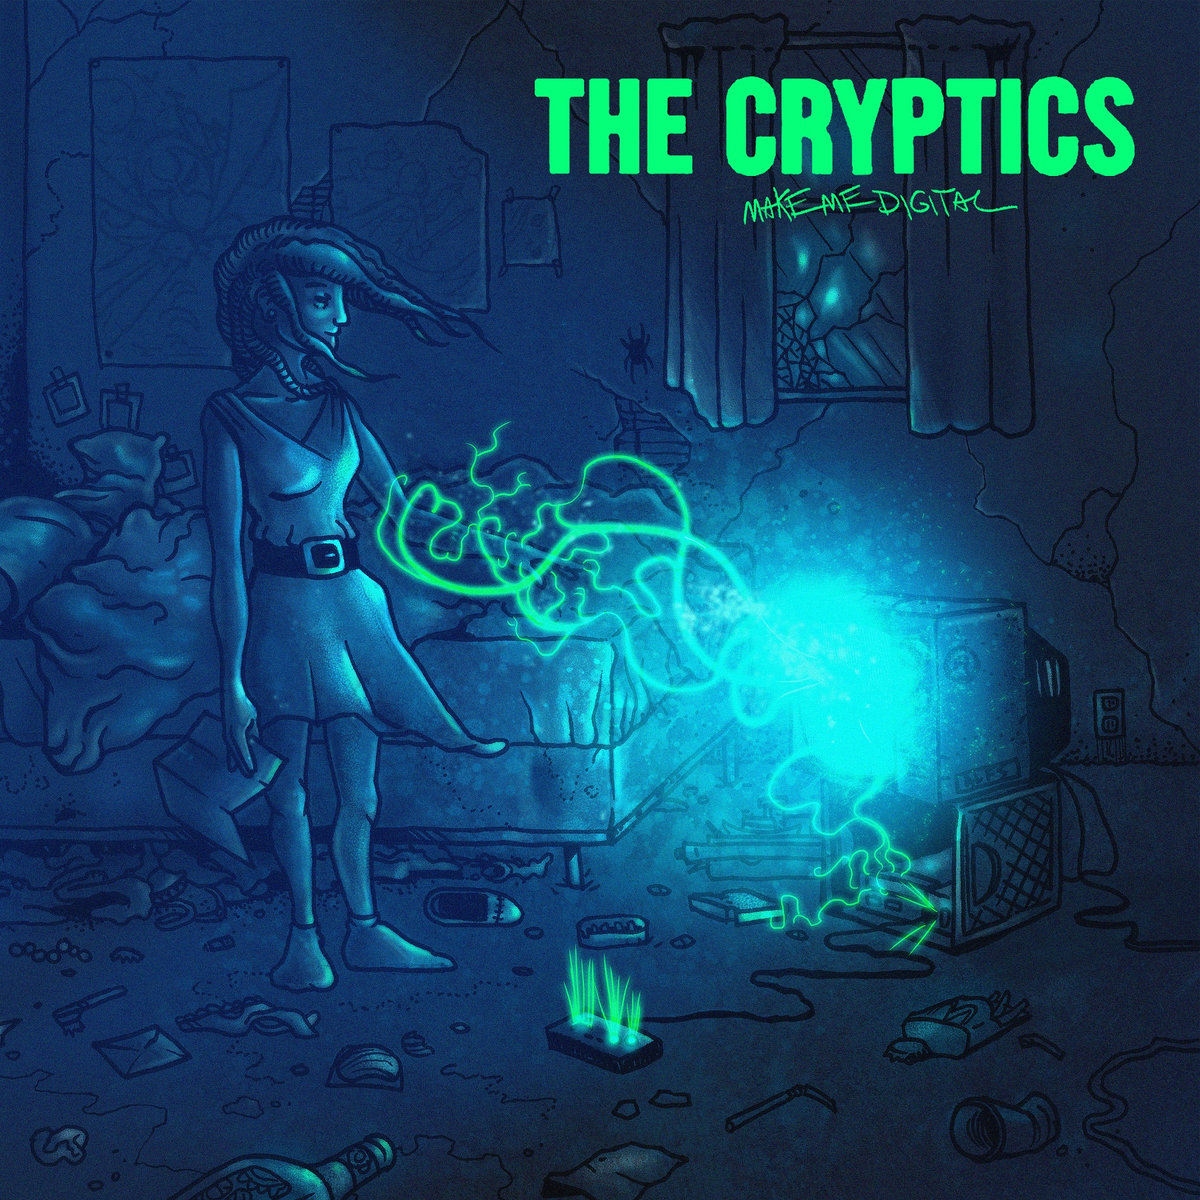 The Cryptics, Make Me Digital, Pine Hill Records.jpg